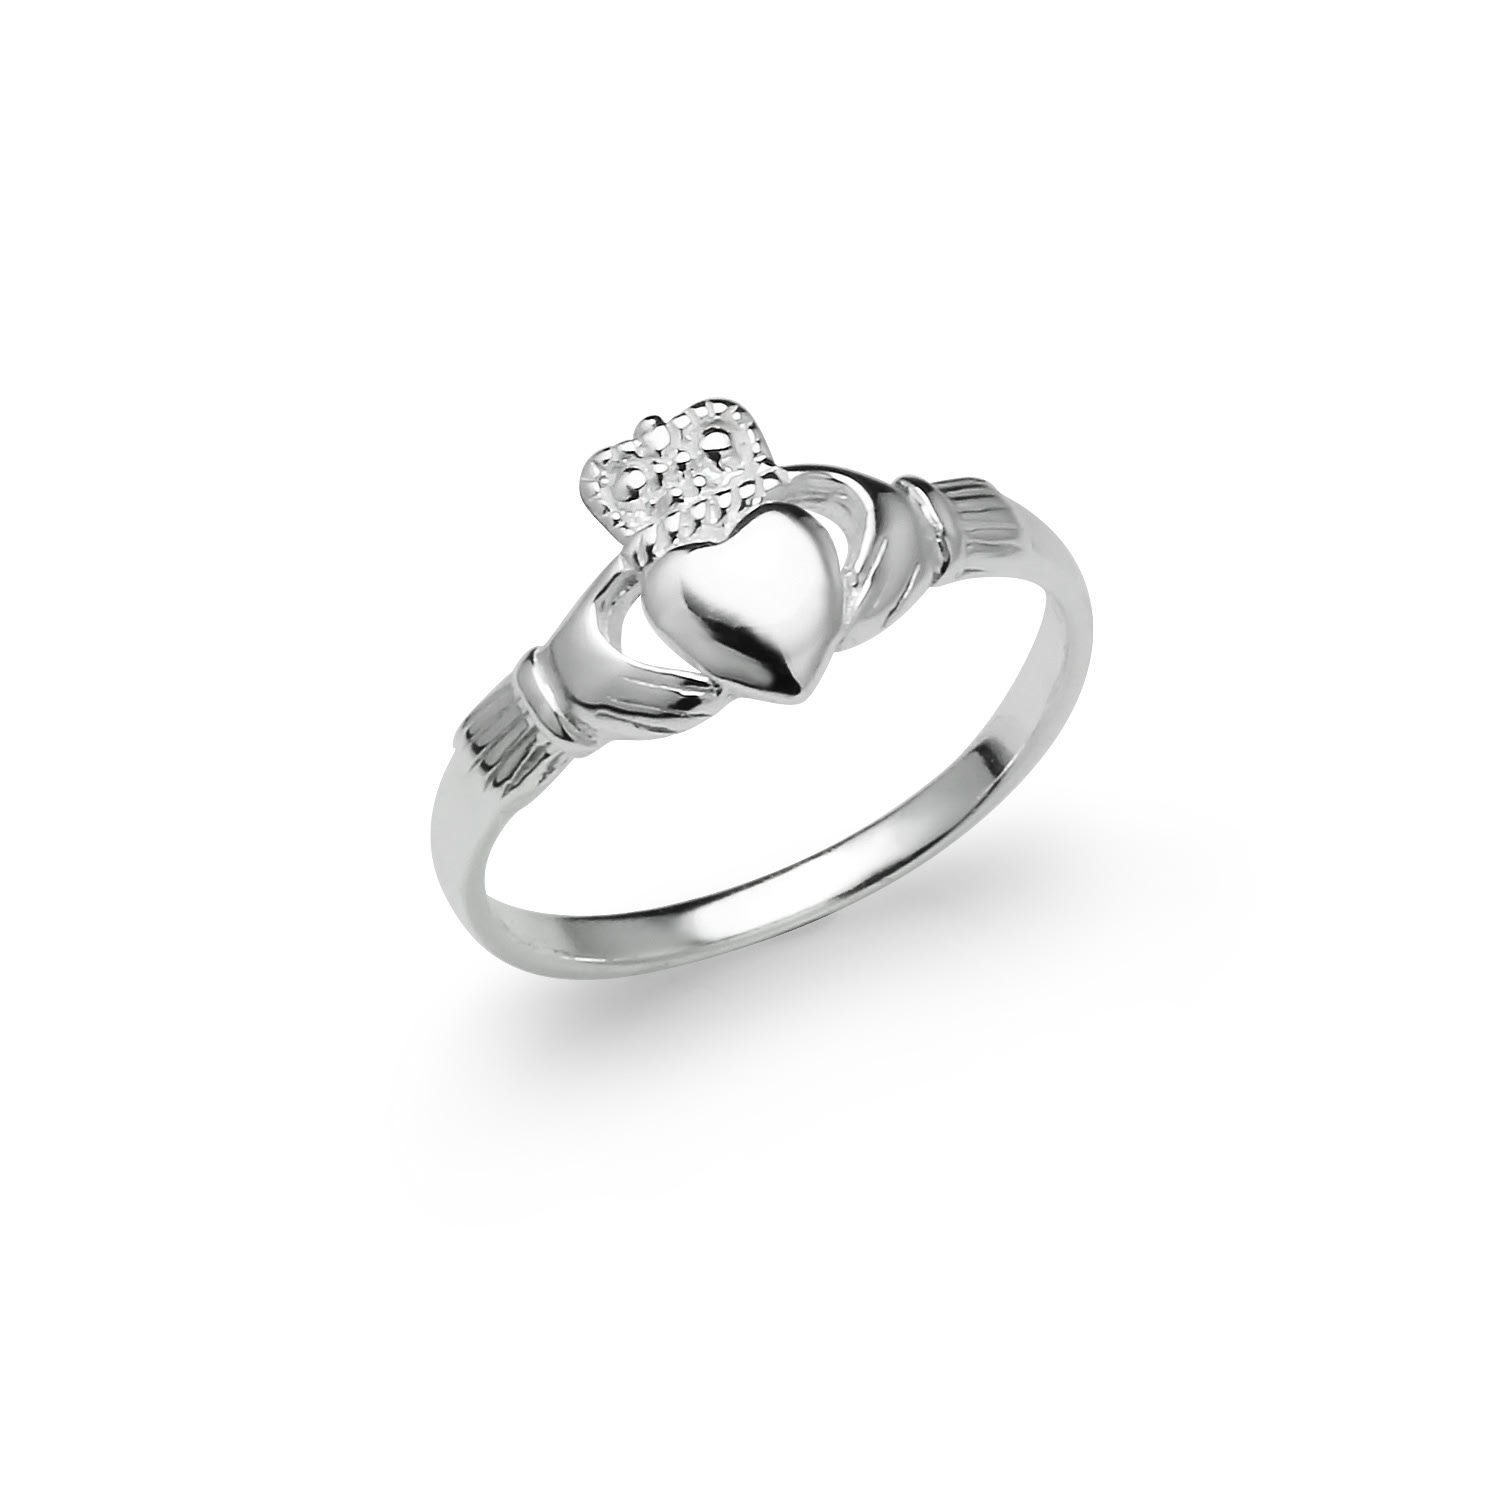 River Island Jewelry - Sterling Silver Irish Claddagh Friendship and Love Celtic Ring Ladies Women's Size 5 6 7 8 9 (9)